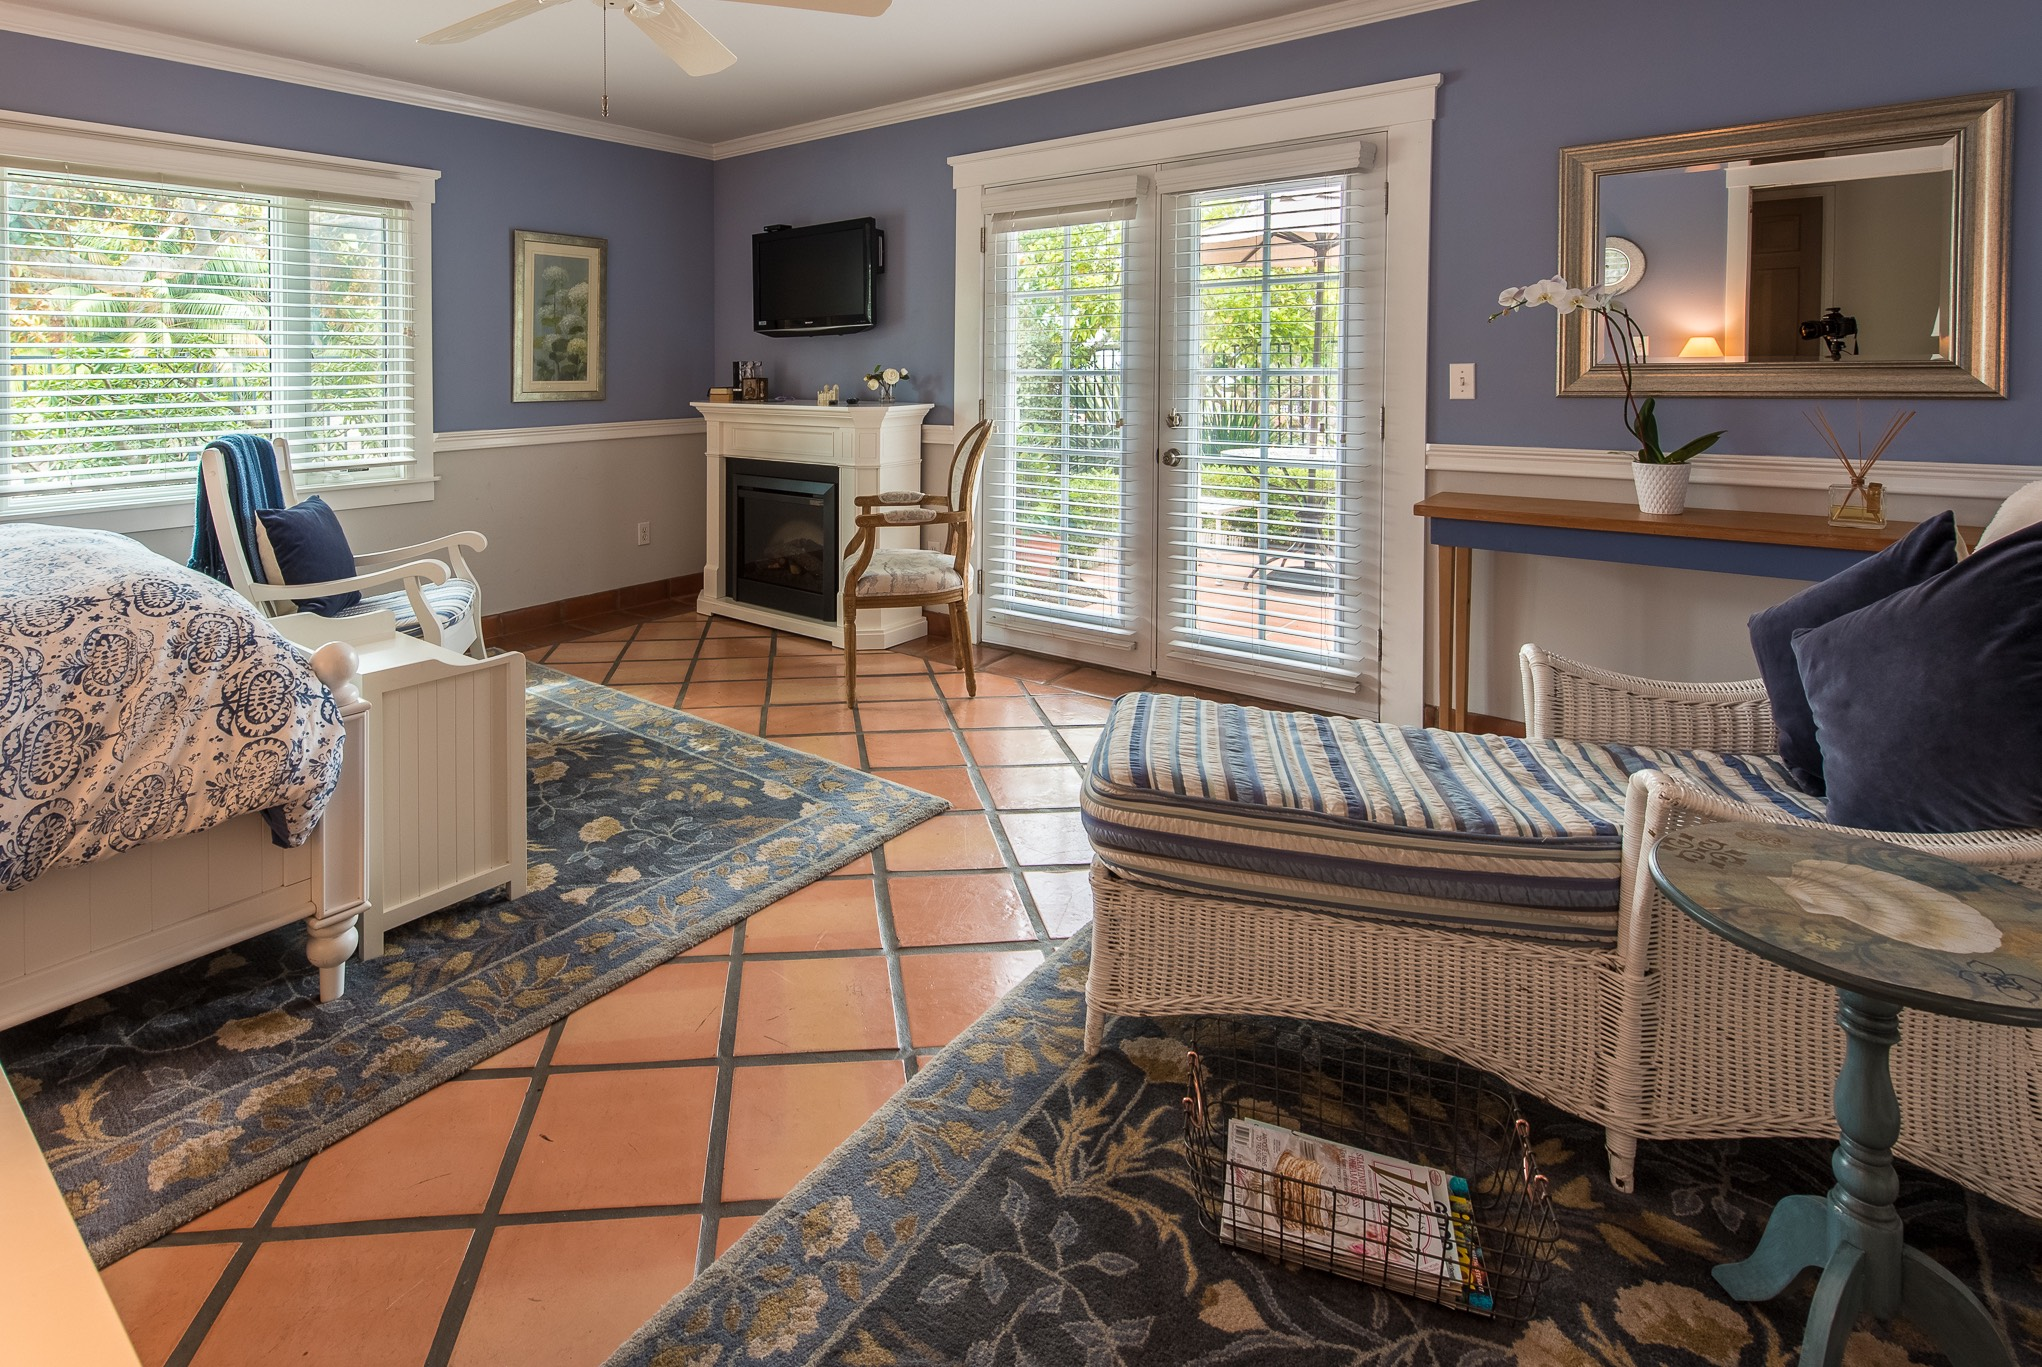 The Nantucket Room - Kate Stanton Bed and Breakfast, San Diego Area